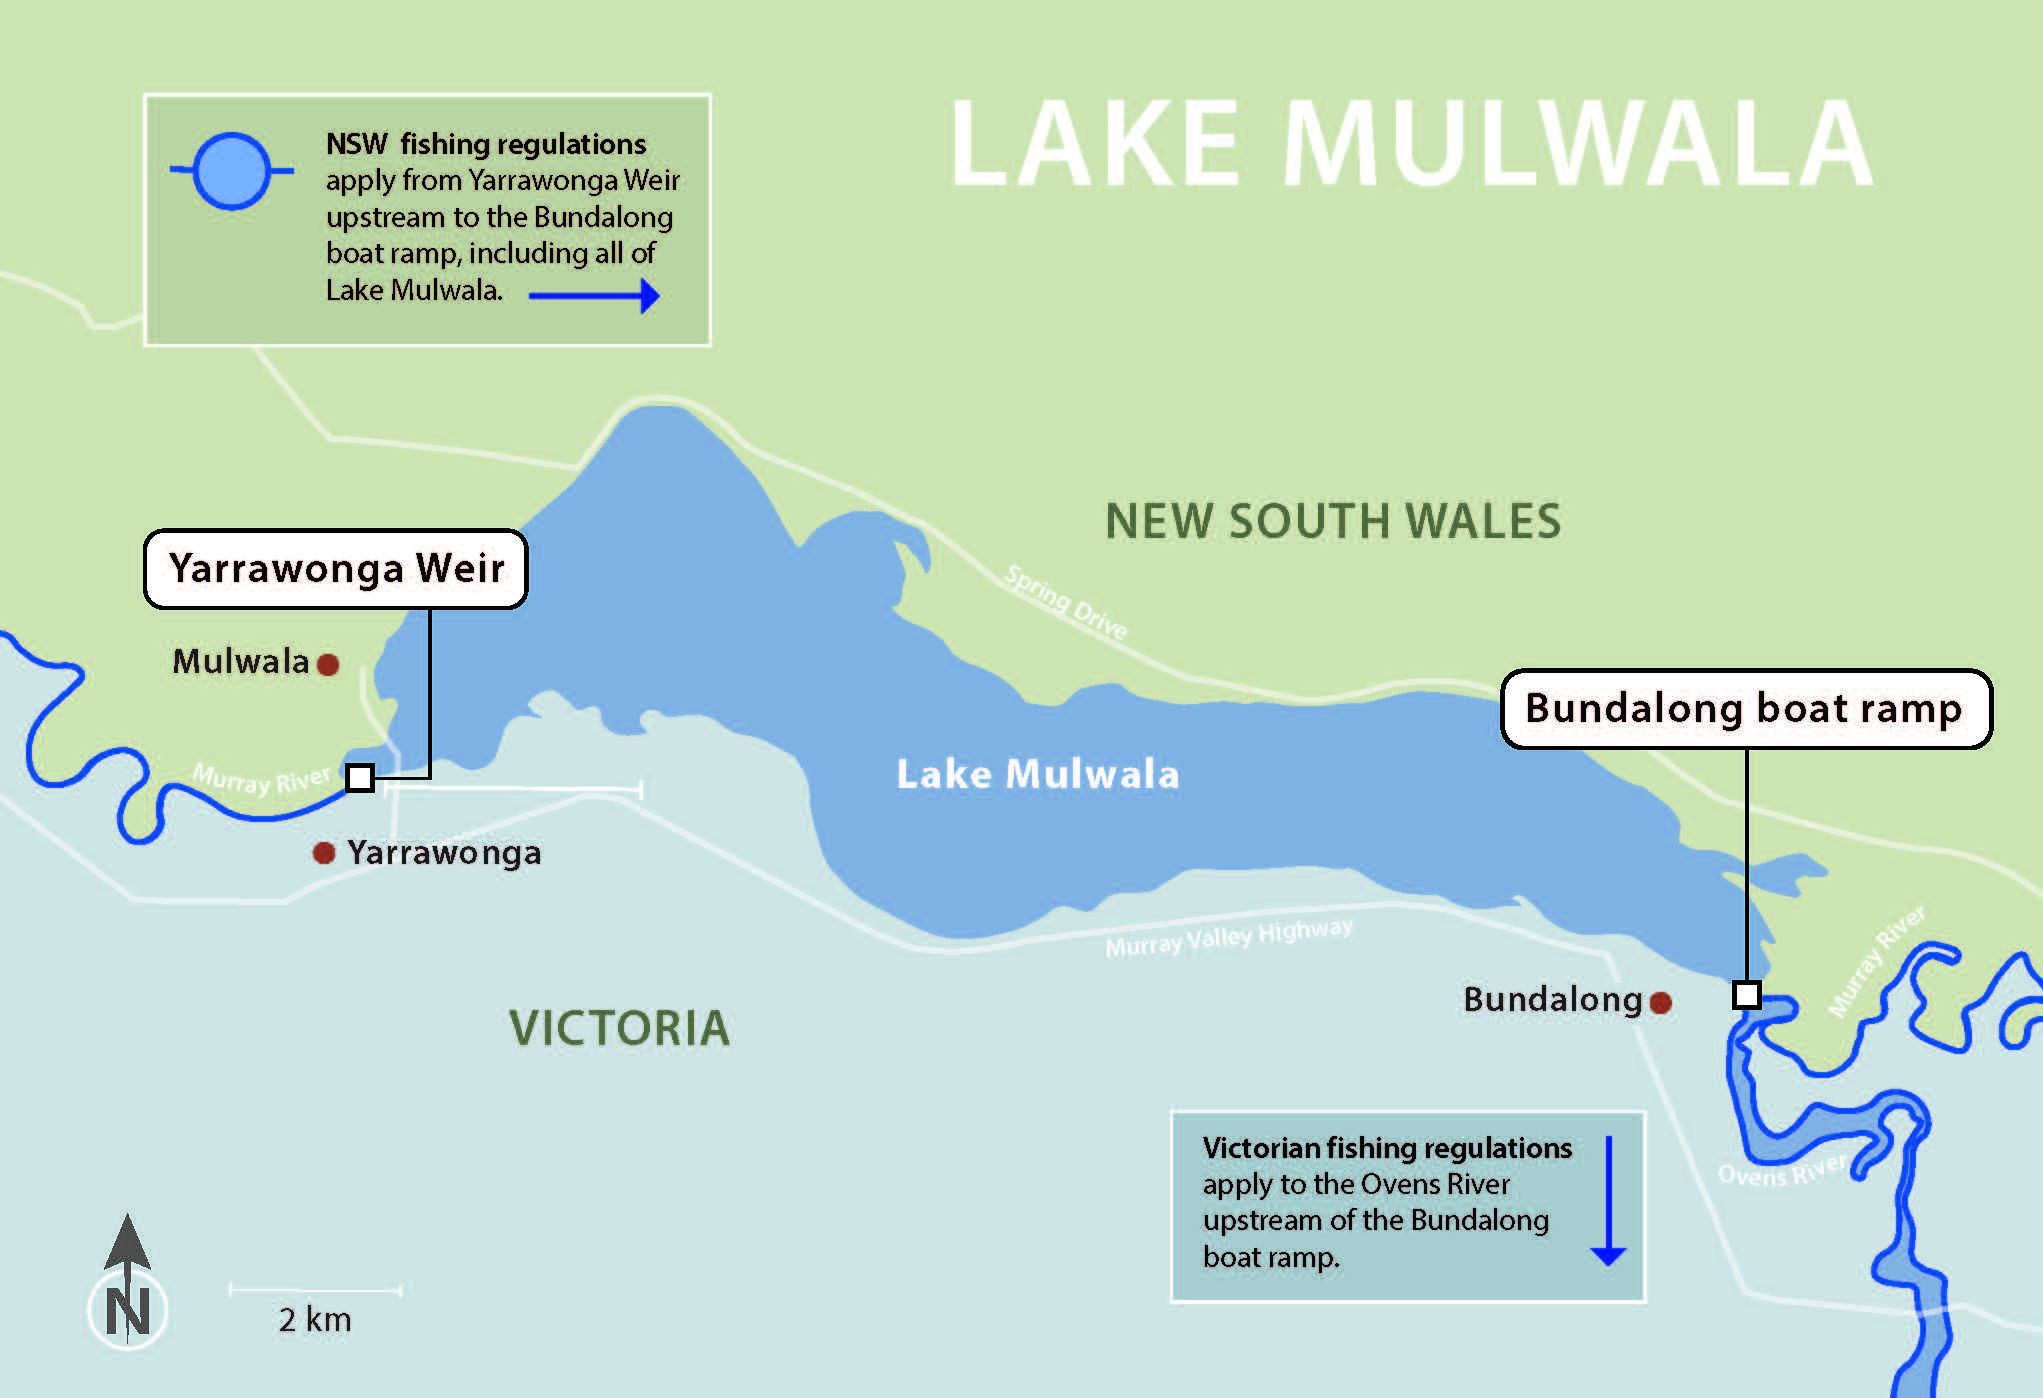 Map showing the location of Lake Mulwala